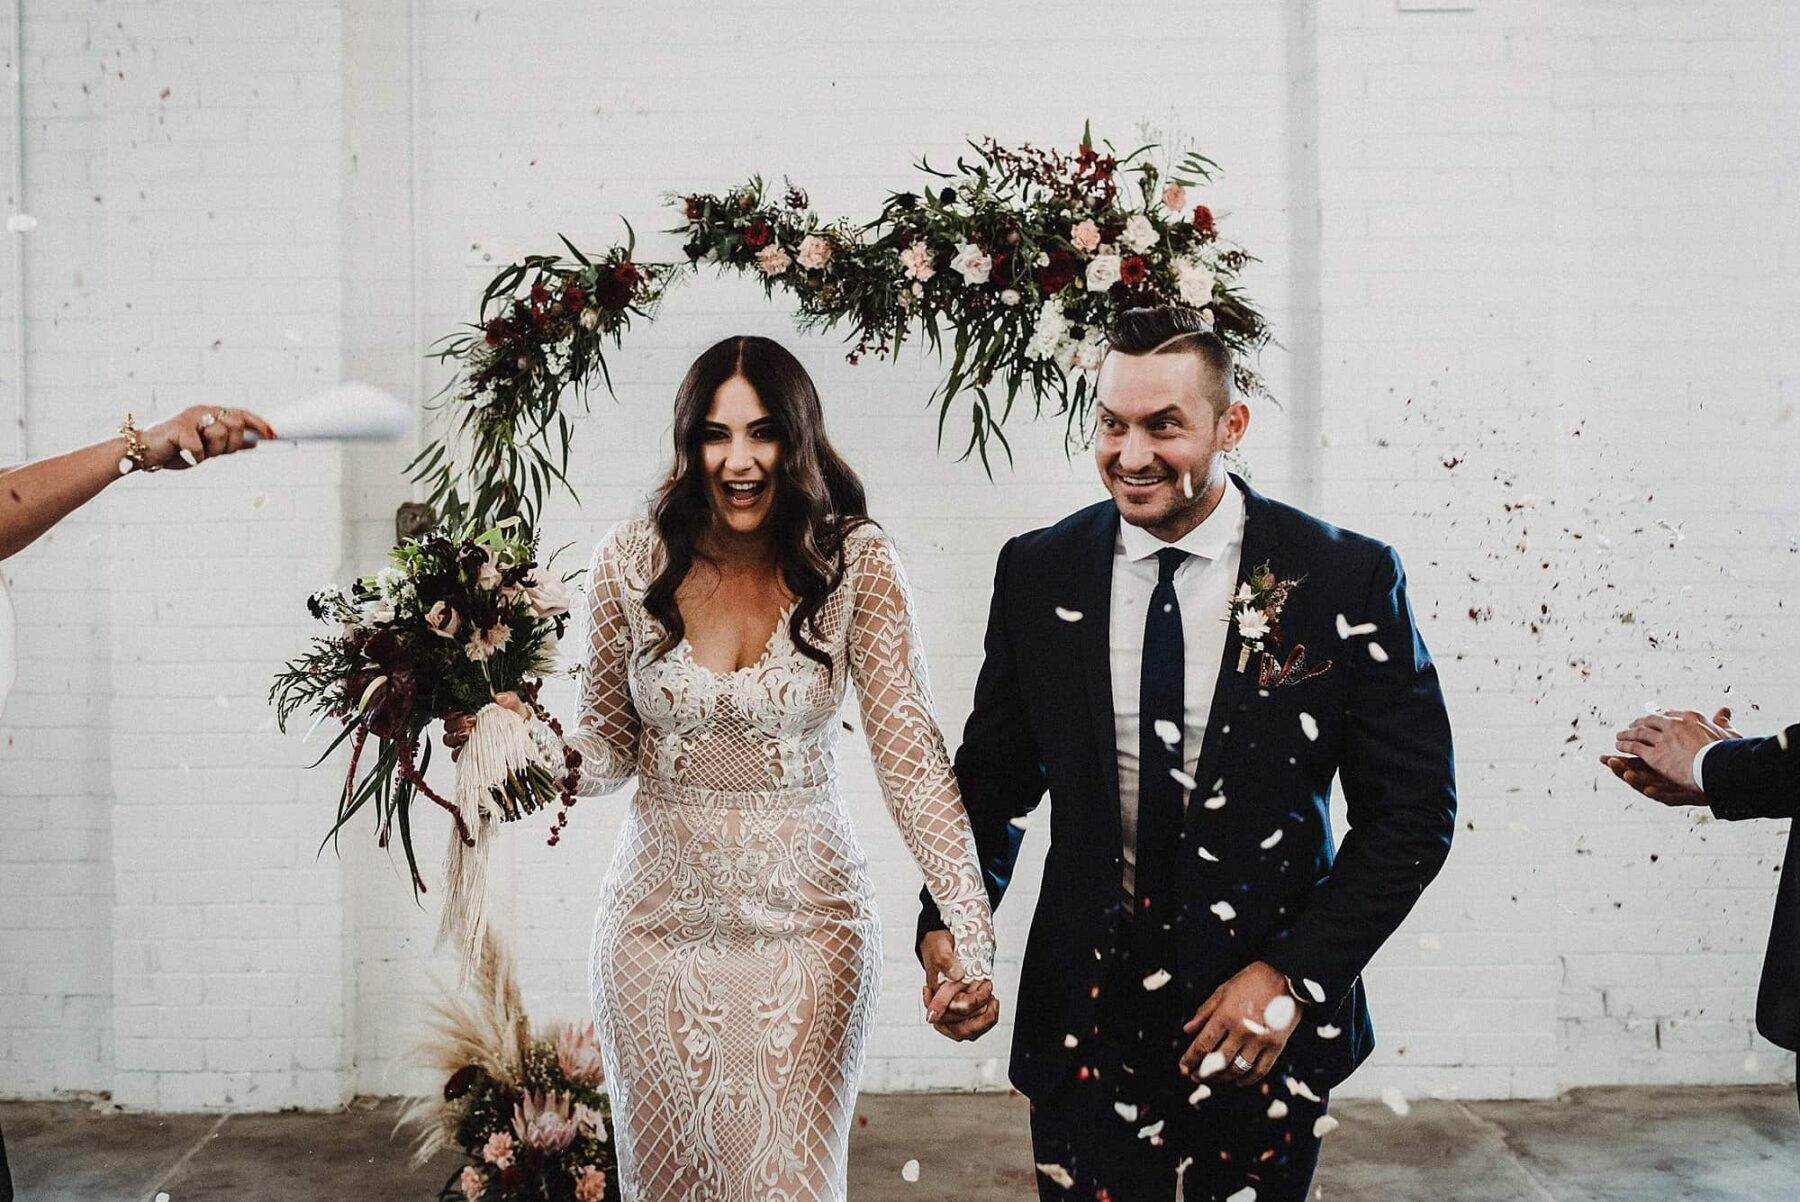 warehouse wedding with floral arch backdrop